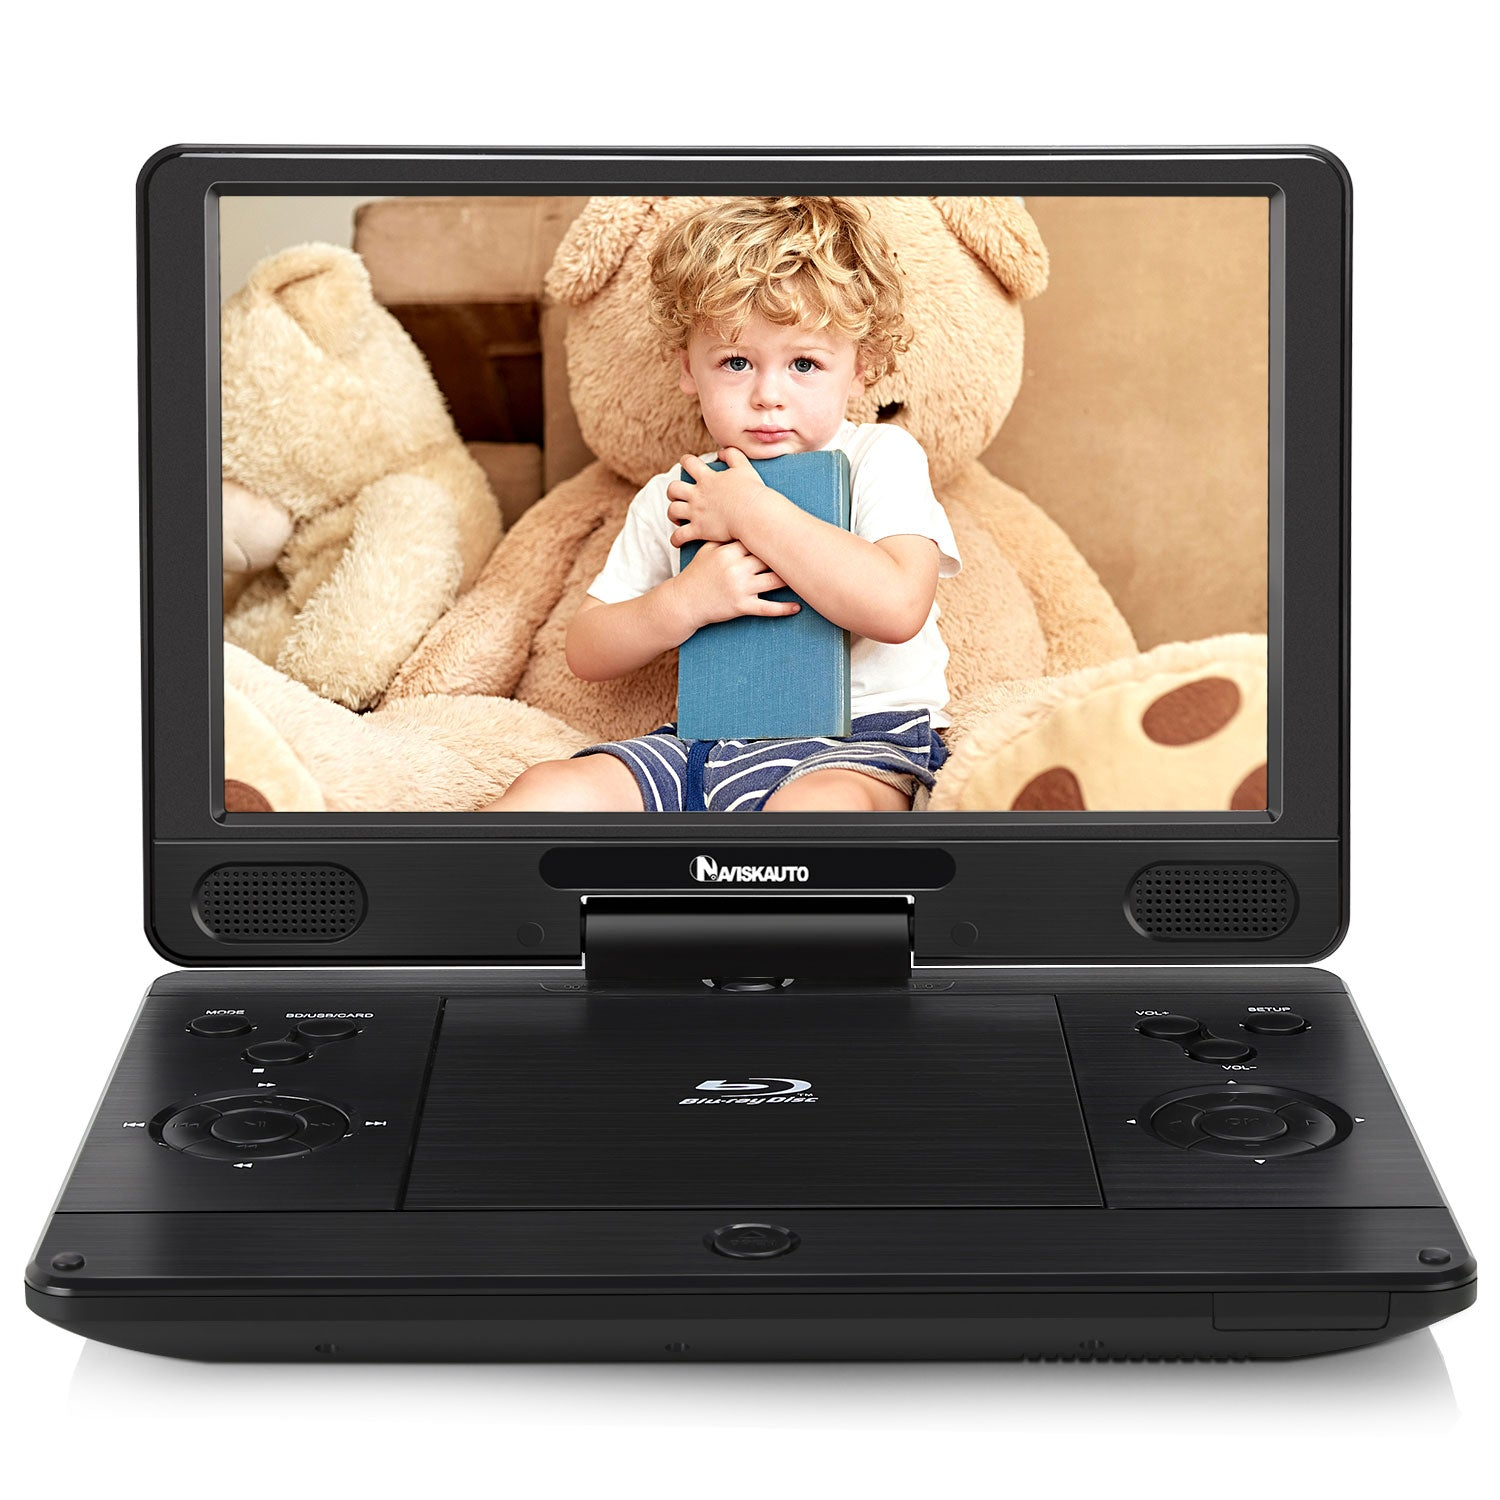 12 Inch Portable Blu Ray DVD Player with 4000mAh Rechargeable Battery and 1024×600 Swivel Screen Support HDMI Out, AV in, Dolby Audio, 1080P HD, USB SD